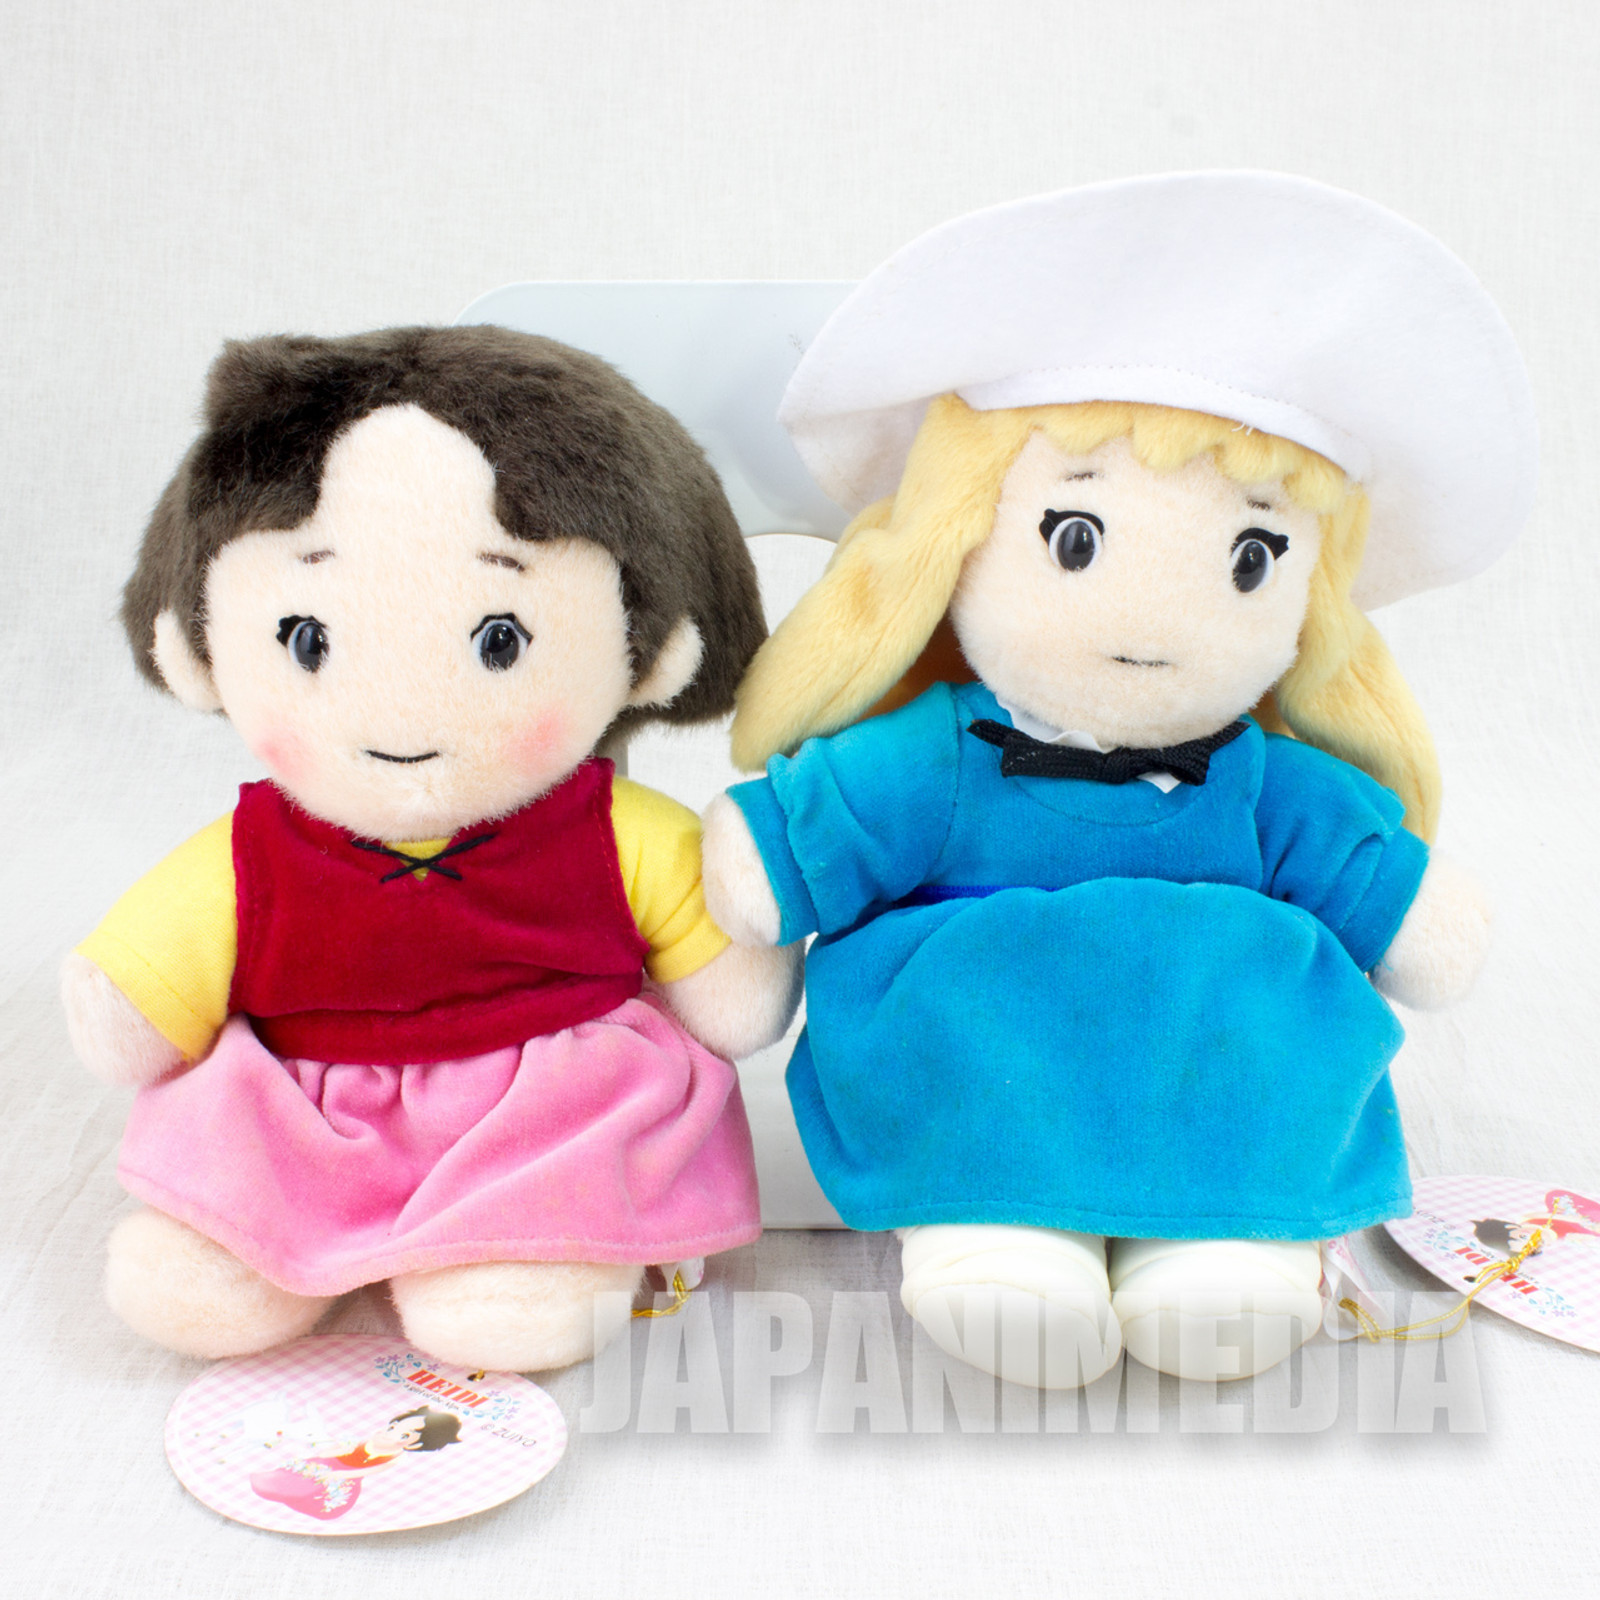 Heidi Girl of the Alps Heidi + Clara Plush Doll Set JAPAN ANIME